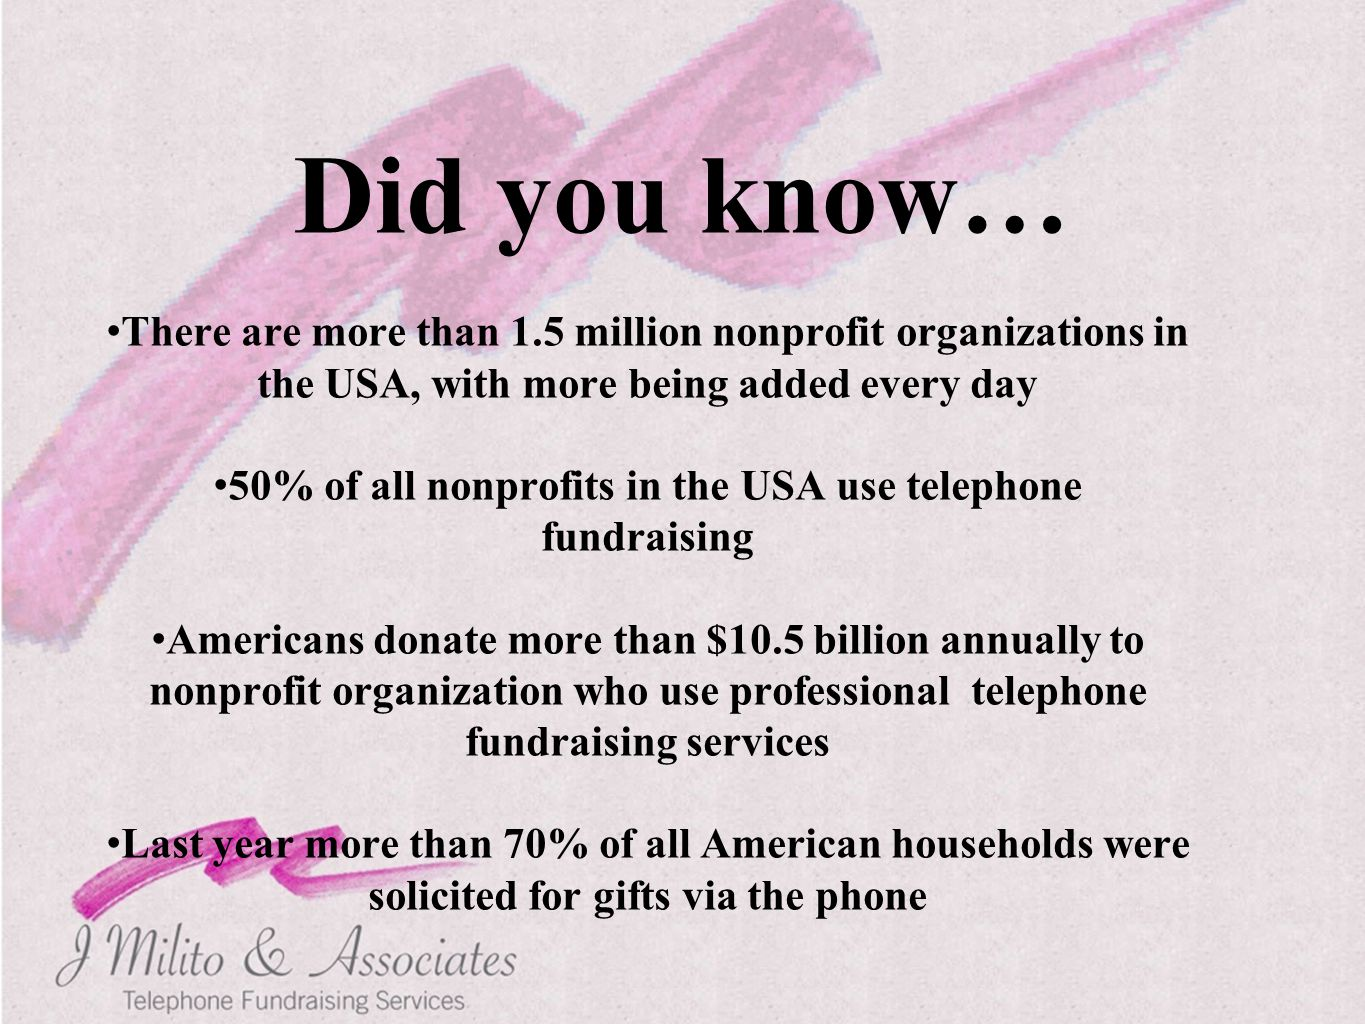 Did you know… There are more than 1.5 million nonprofit organizations in the USA, with more being added every day 50% of all nonprofits in the USA use